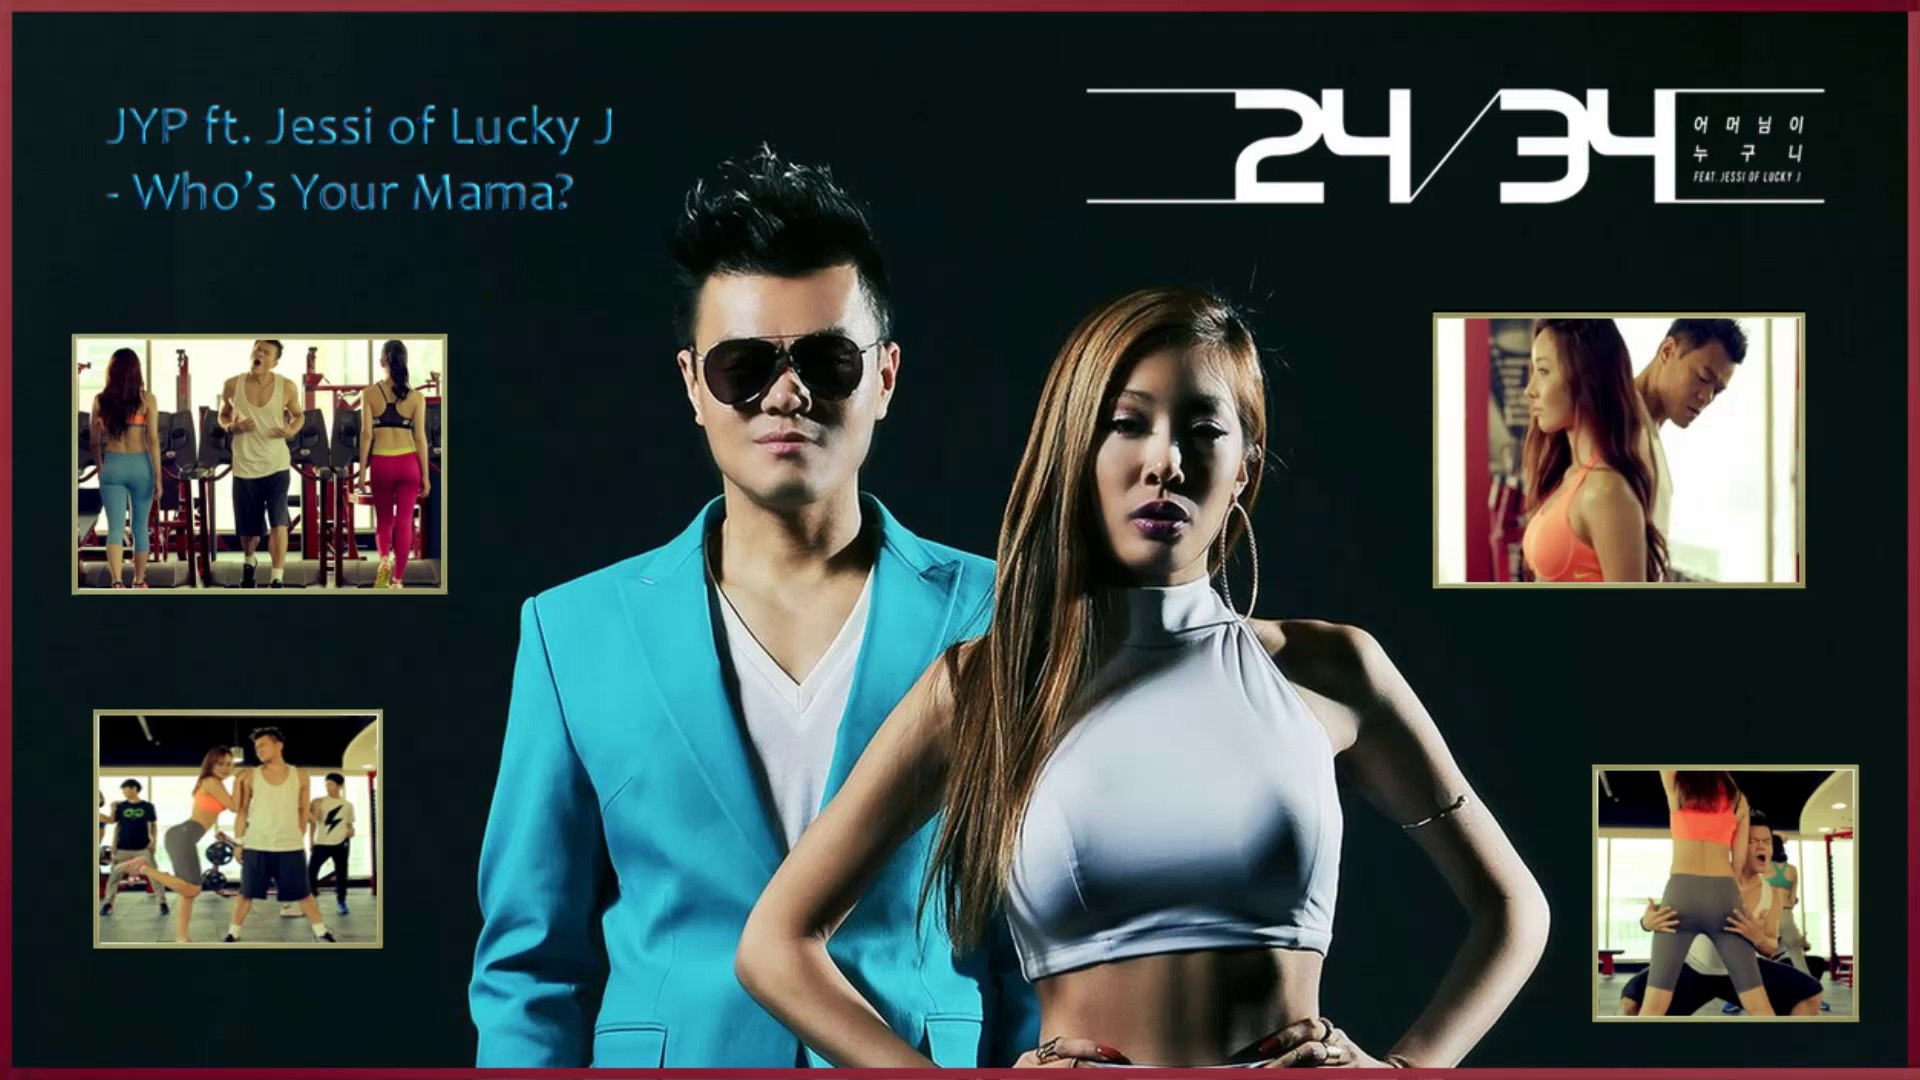 Jyp Ft Jessi Of Lucky J Whos Your Mama K Pop German Sub